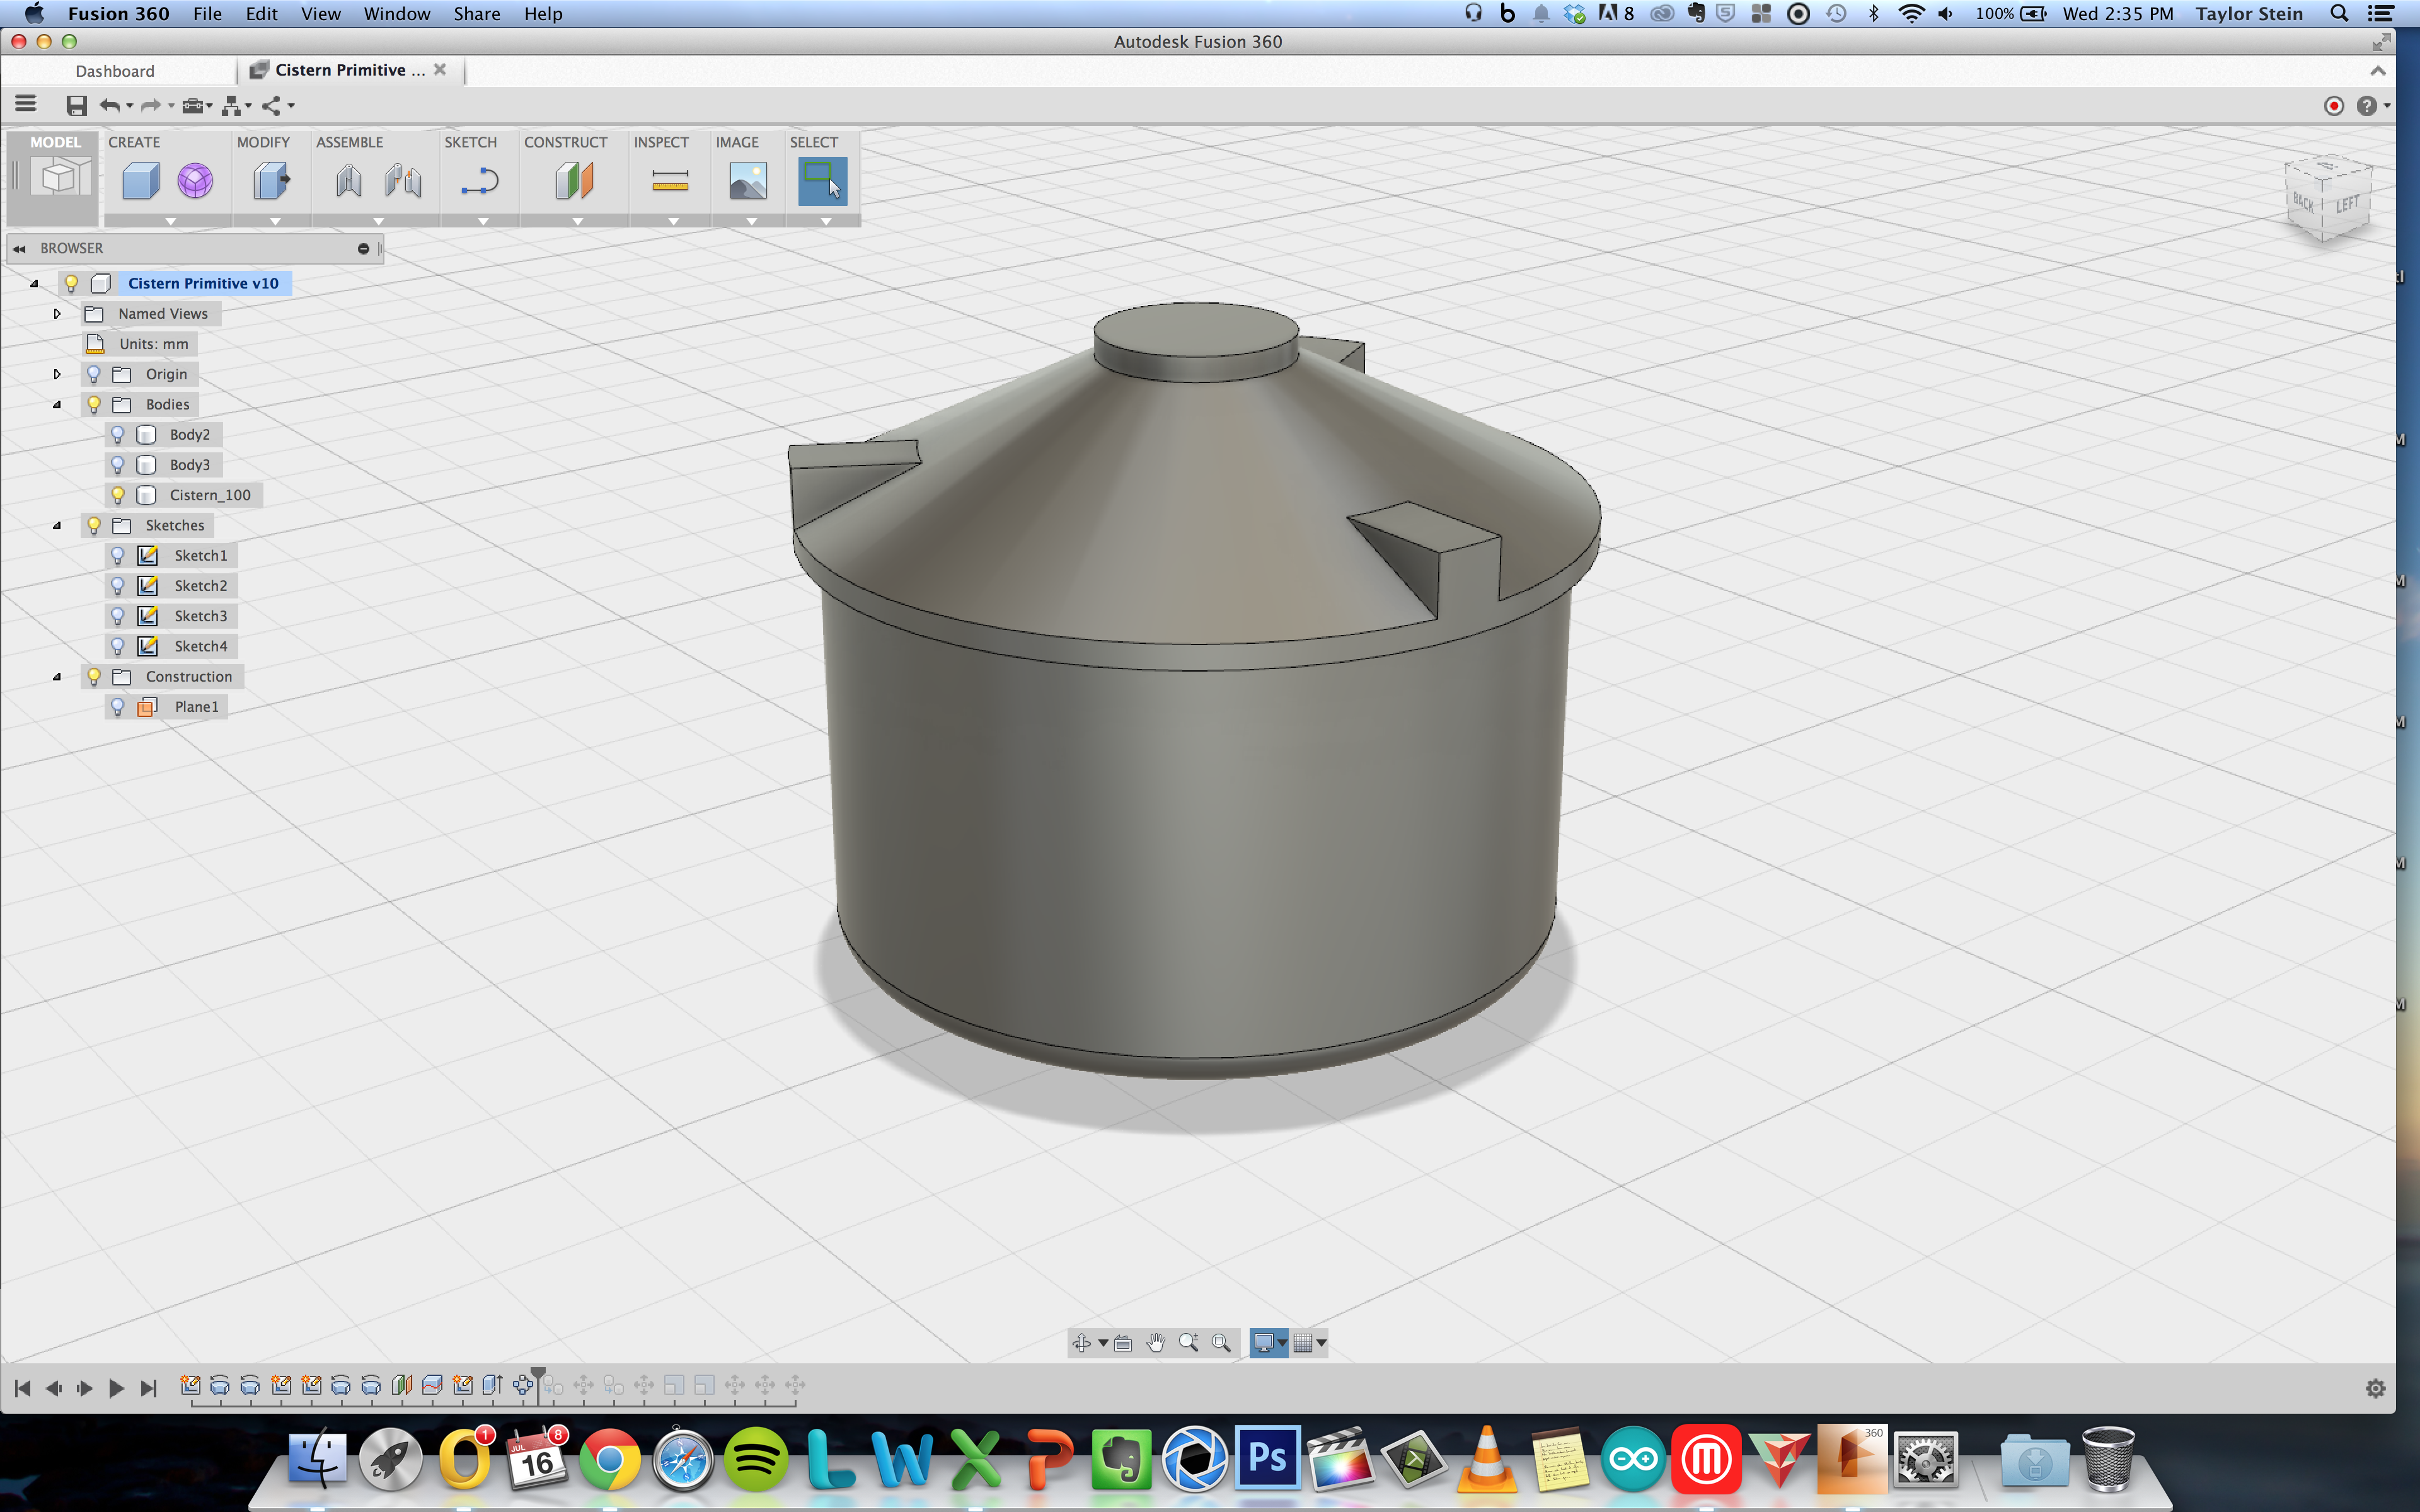 Picture of Model in Fusion 360